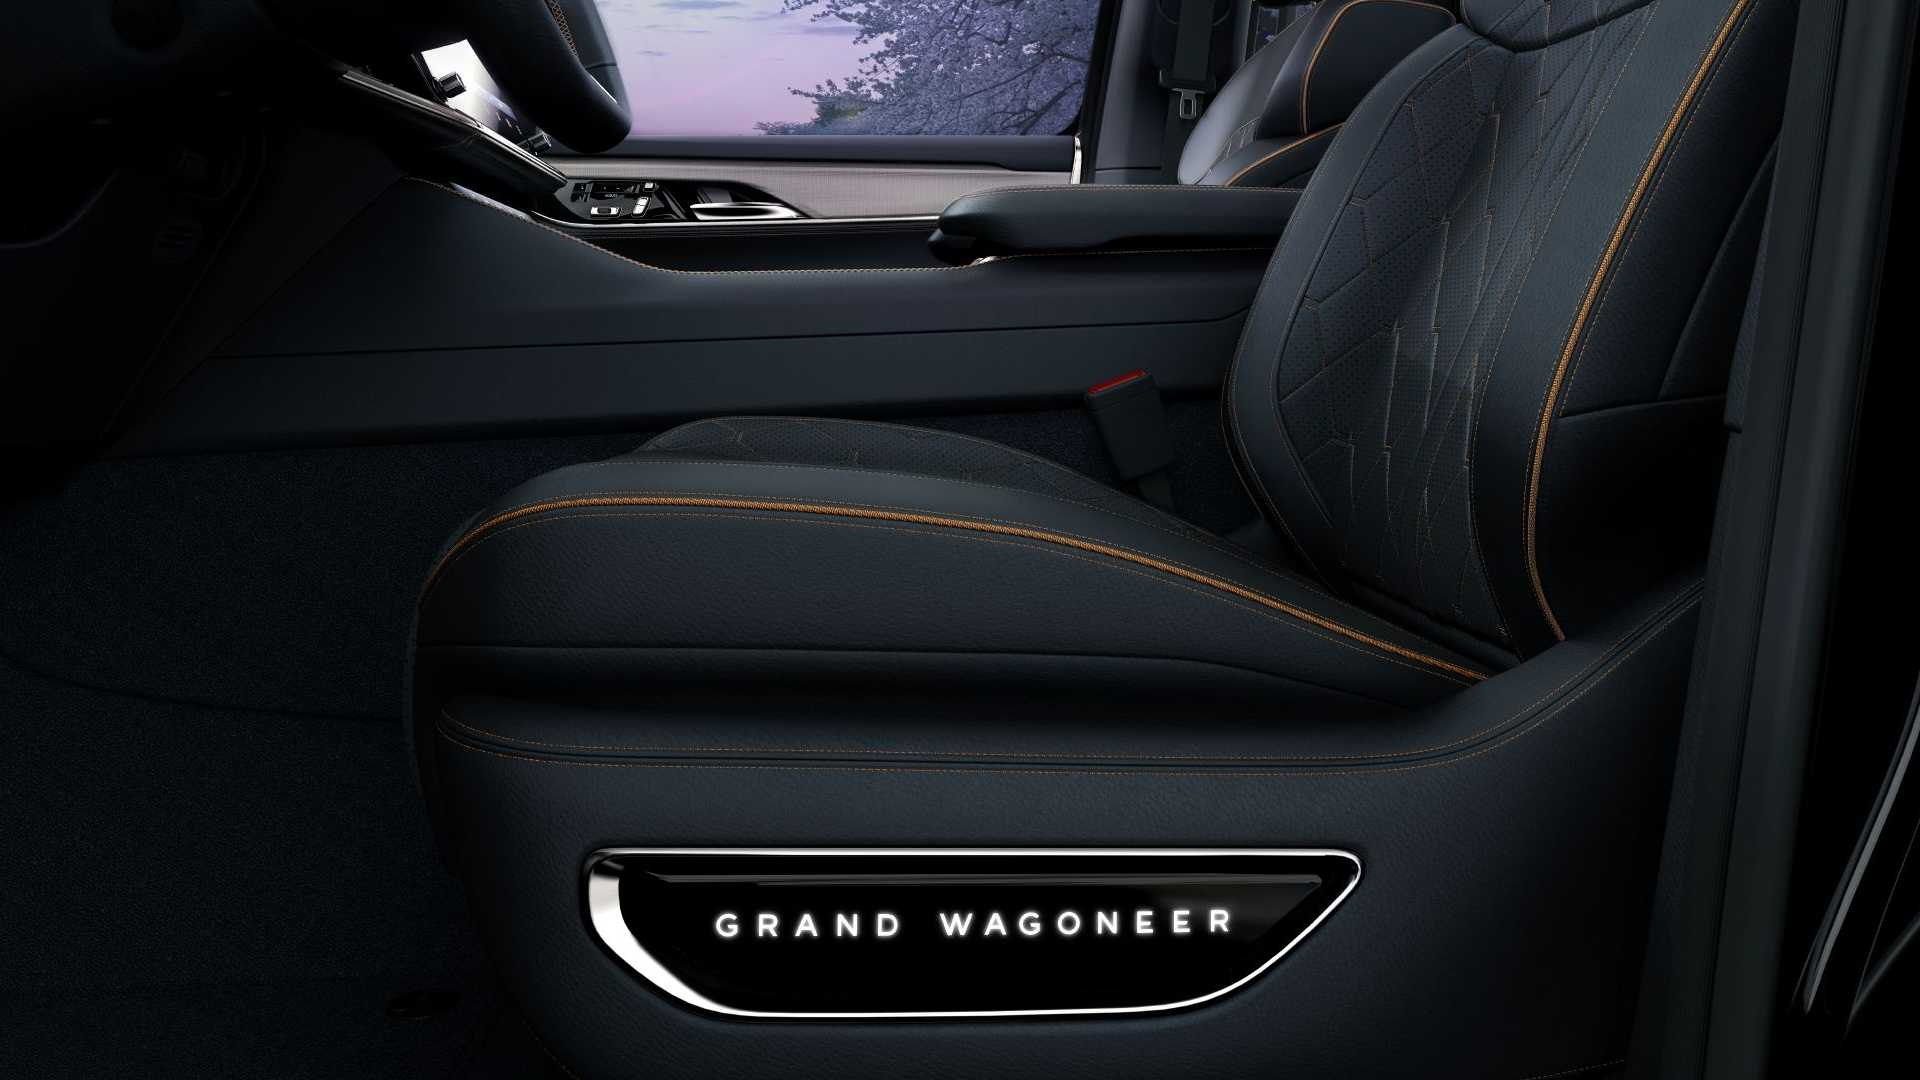 2022-jeep-grand-wagoneer-interior-front-seat-accent